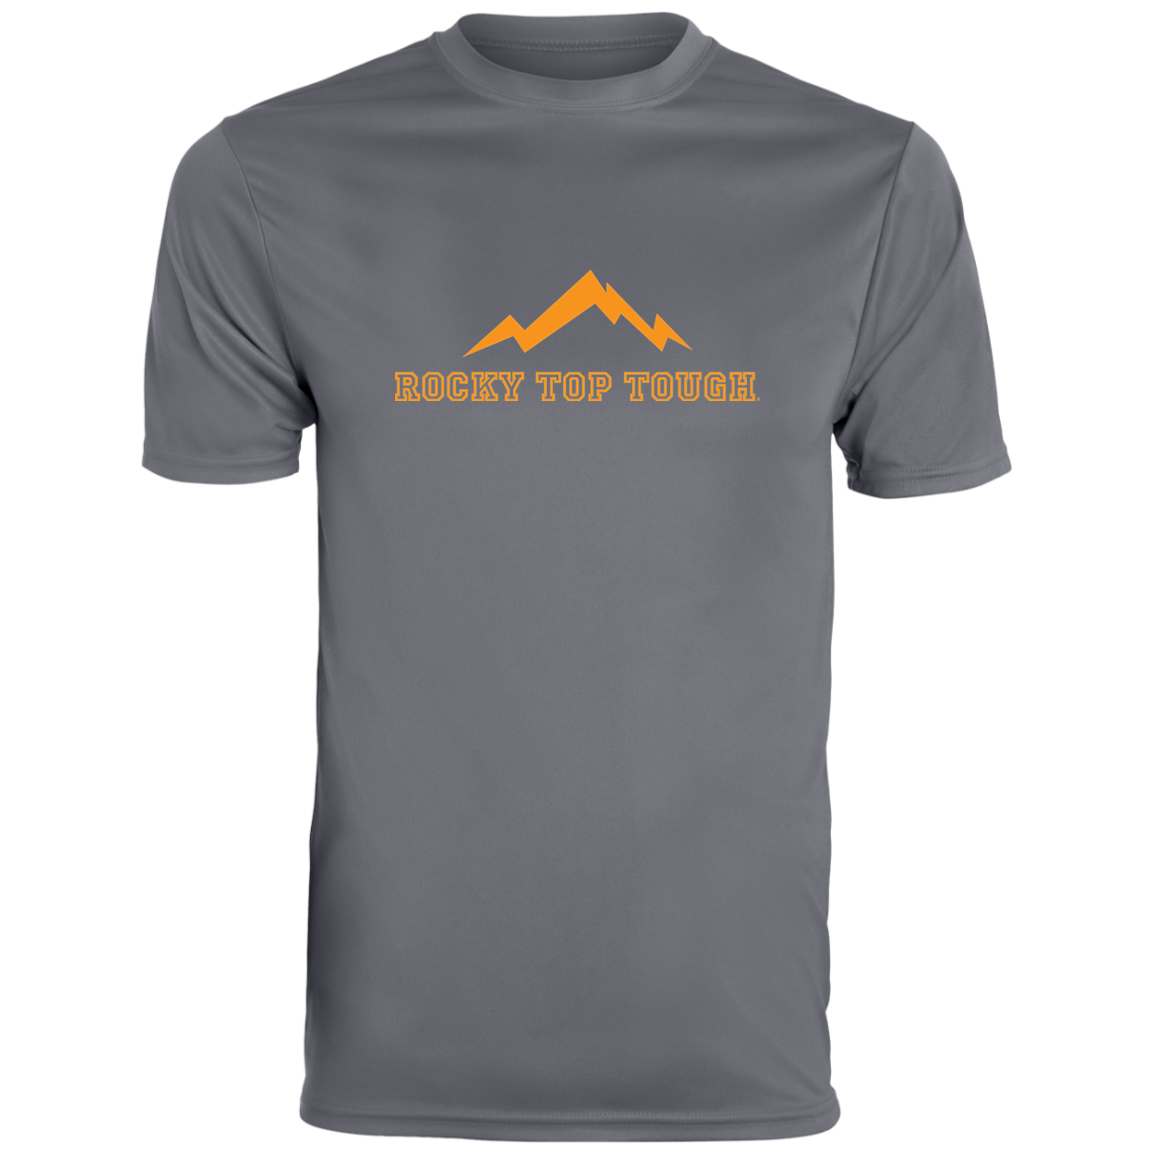 ROCKY TOP TOUGH PERFORMANCE TEE